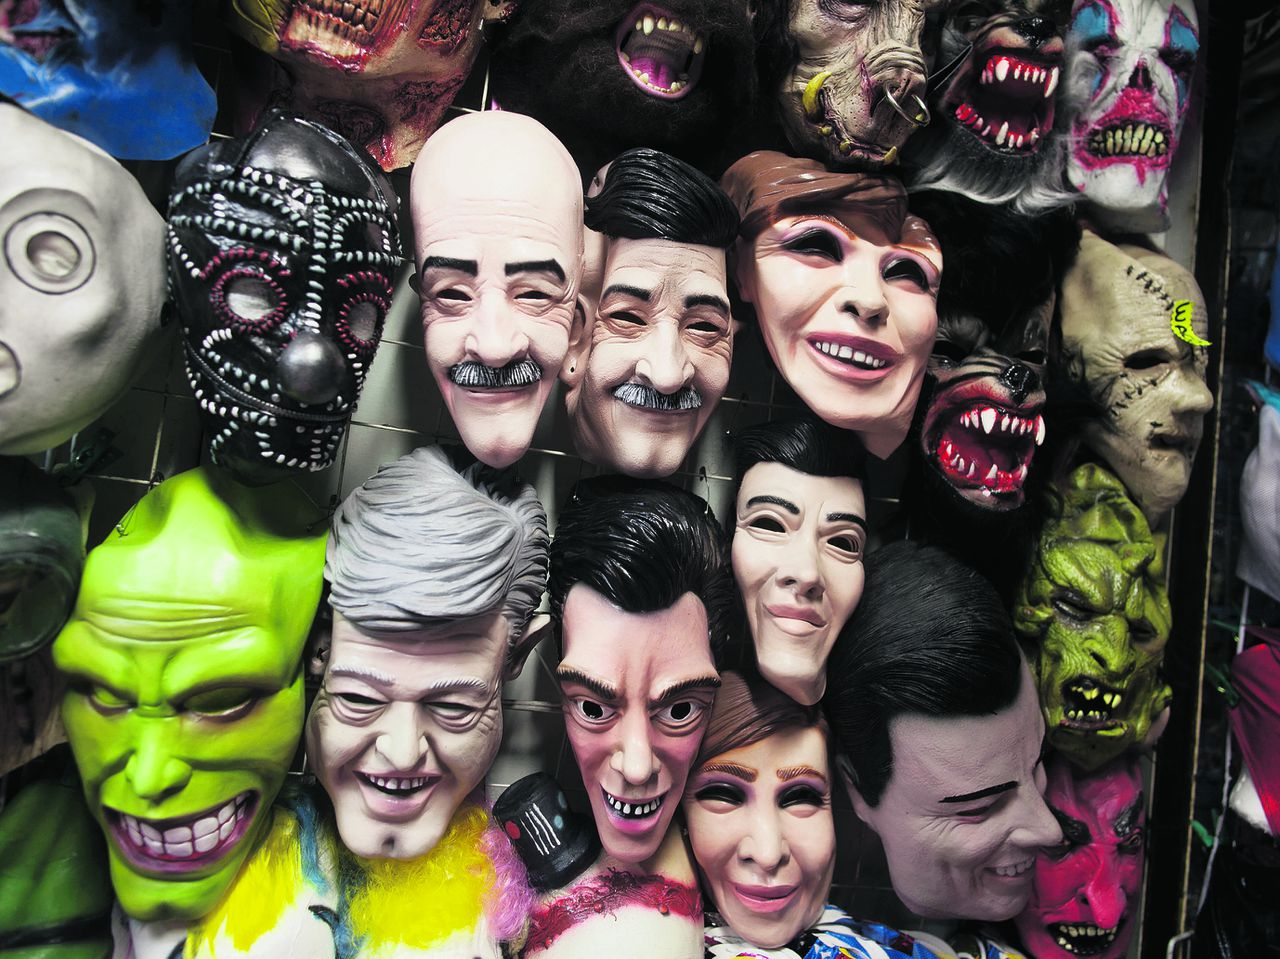 Masks depicting presidential candidates, Josefina Vazquez Mota, for the National Action Party (PAN), Enrique Pena Nieto, for the opposition Institutional Revolutionary Party, (PRI), Andres Manuel Lopez Obrador, for the Democratic Revolution Party (PRD) and former Mexico's Presidents Carlos Salina de Gortari and Vicente Fox, are displayed for sale among masks depicting some fictional characters in Mexico City, Thursday, June 28, 2012. Mexico will hold its presidential election on July 1. (AP Photo/Esteban Felix)`